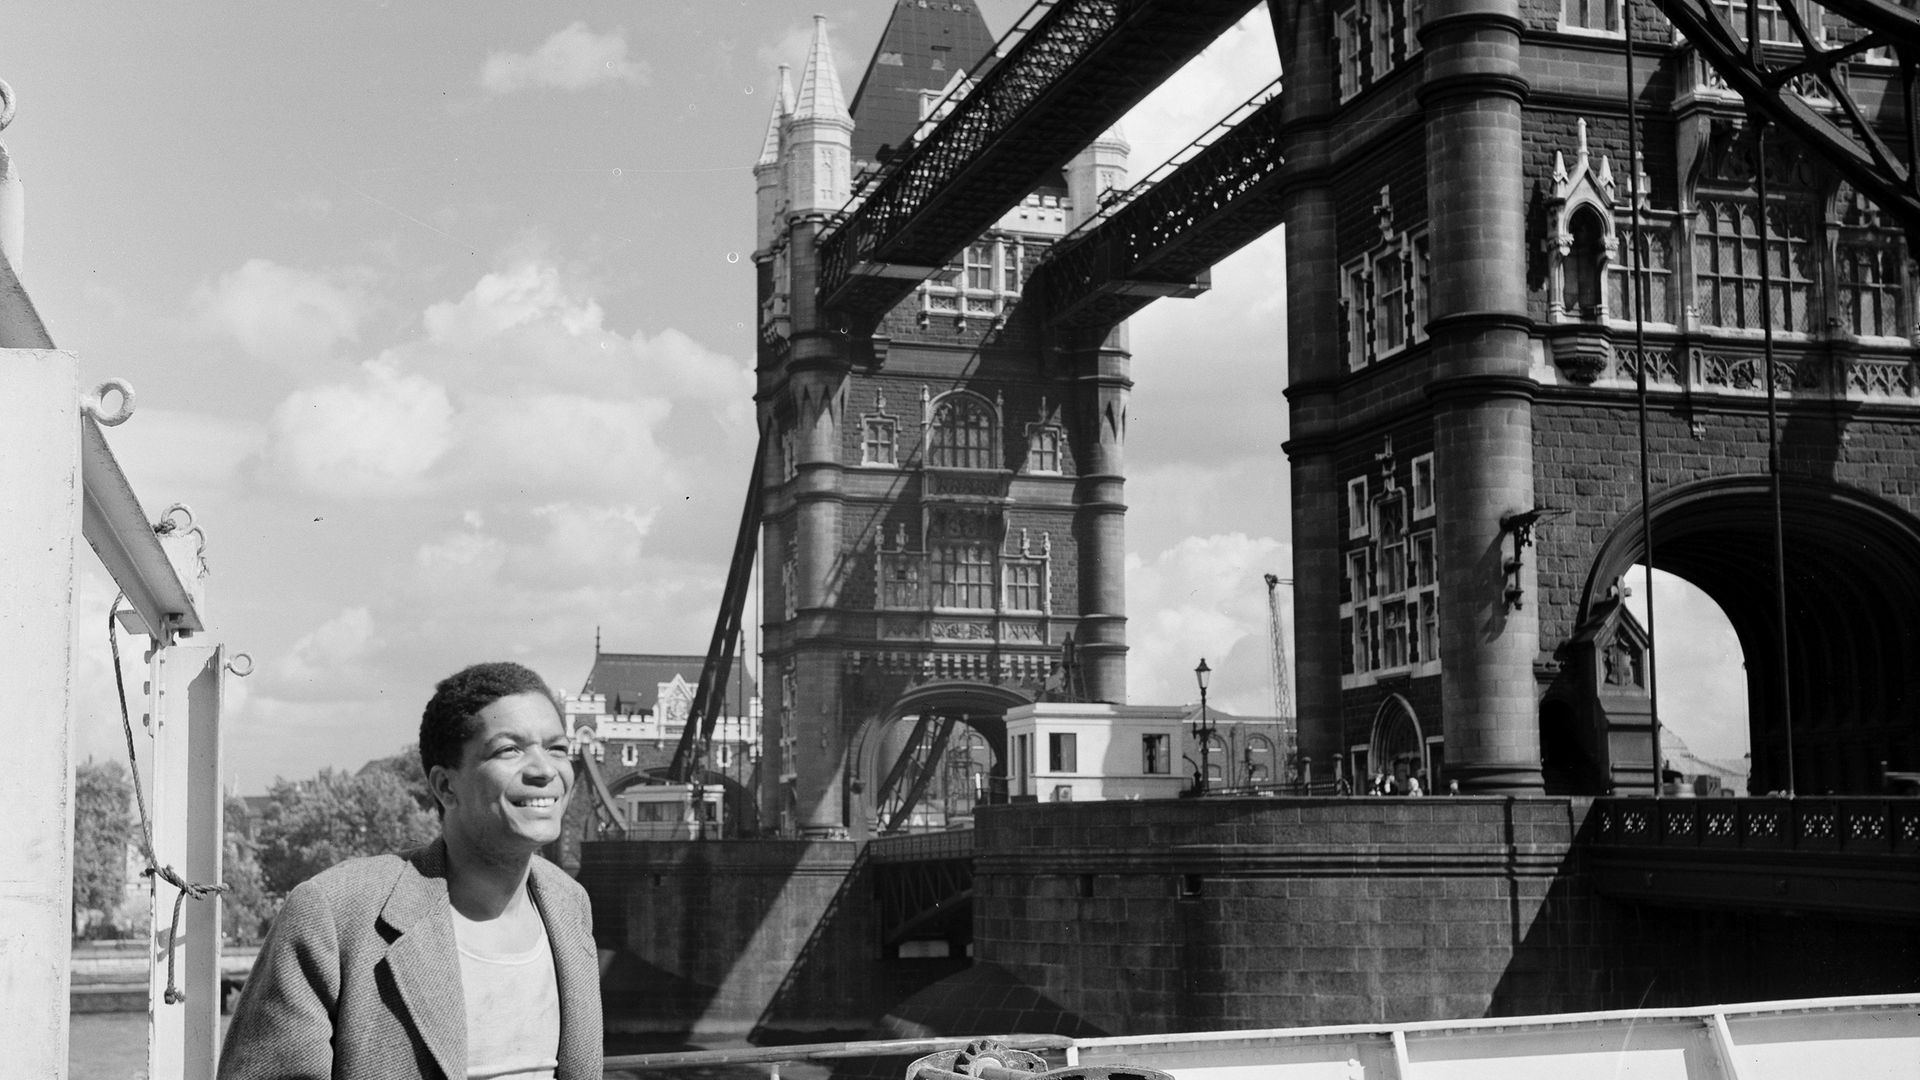 A still from Pool of London, 1951 - Credit: Courtesy of STUDIOCANAL